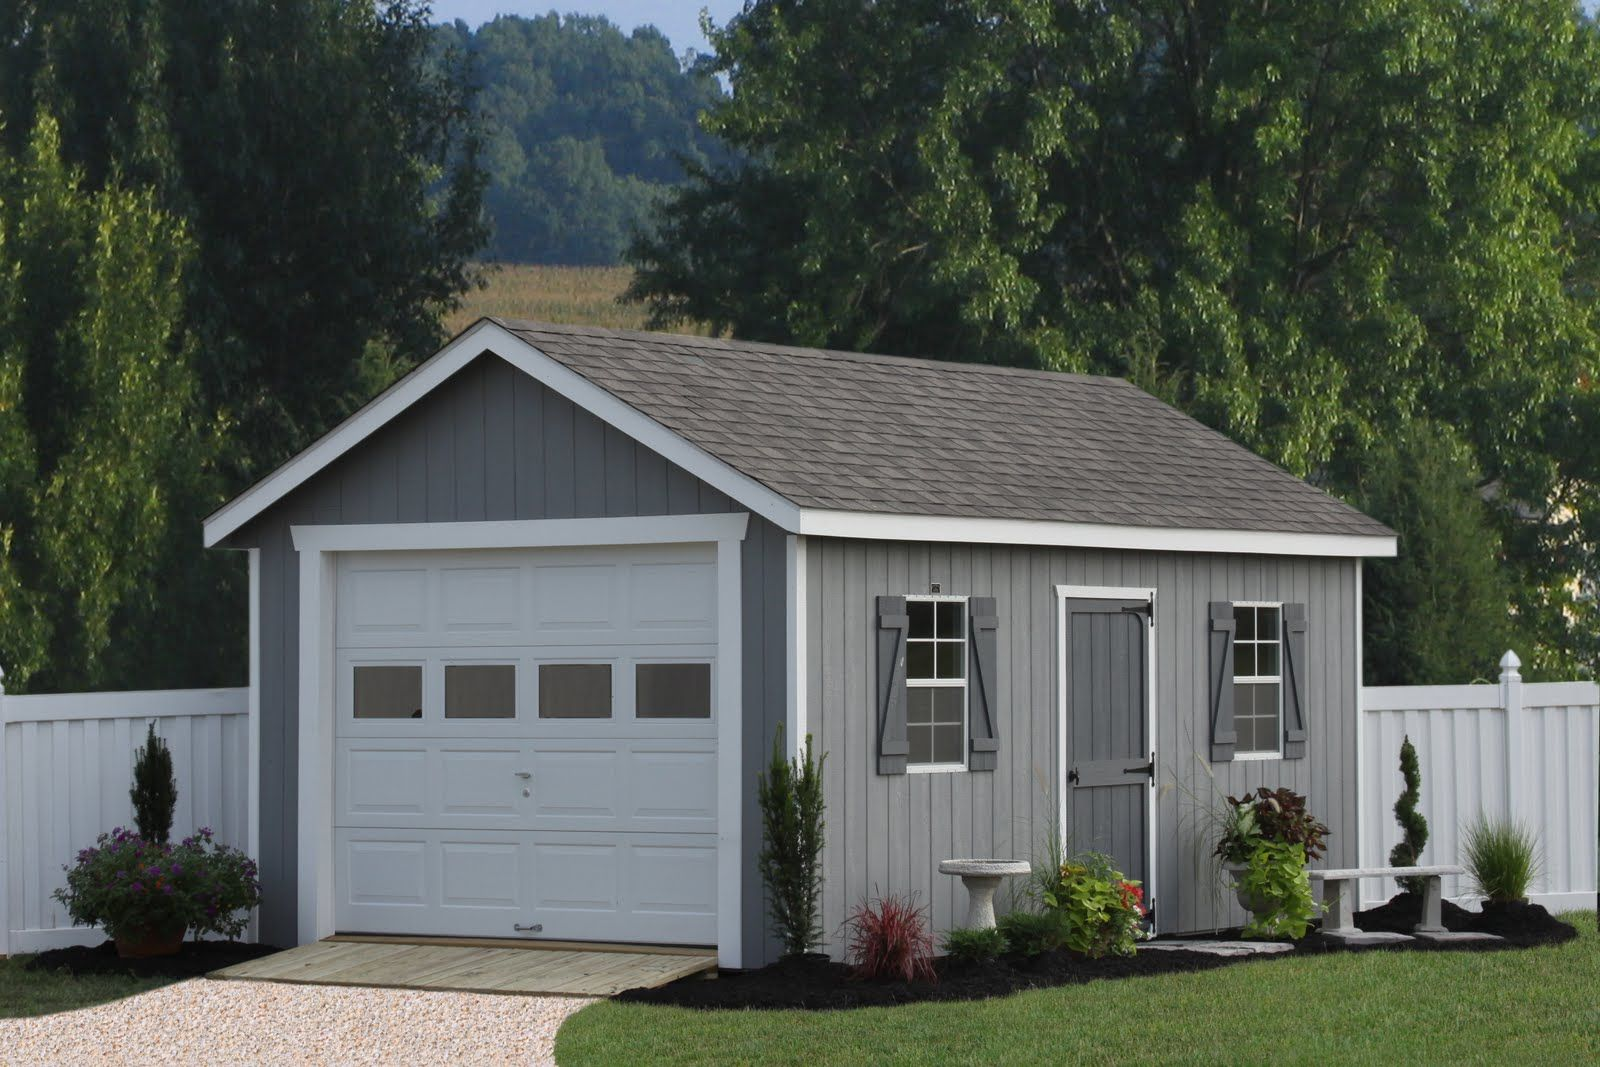 Add on garage plans 12x20 classic one car garage for Small home plans with garage